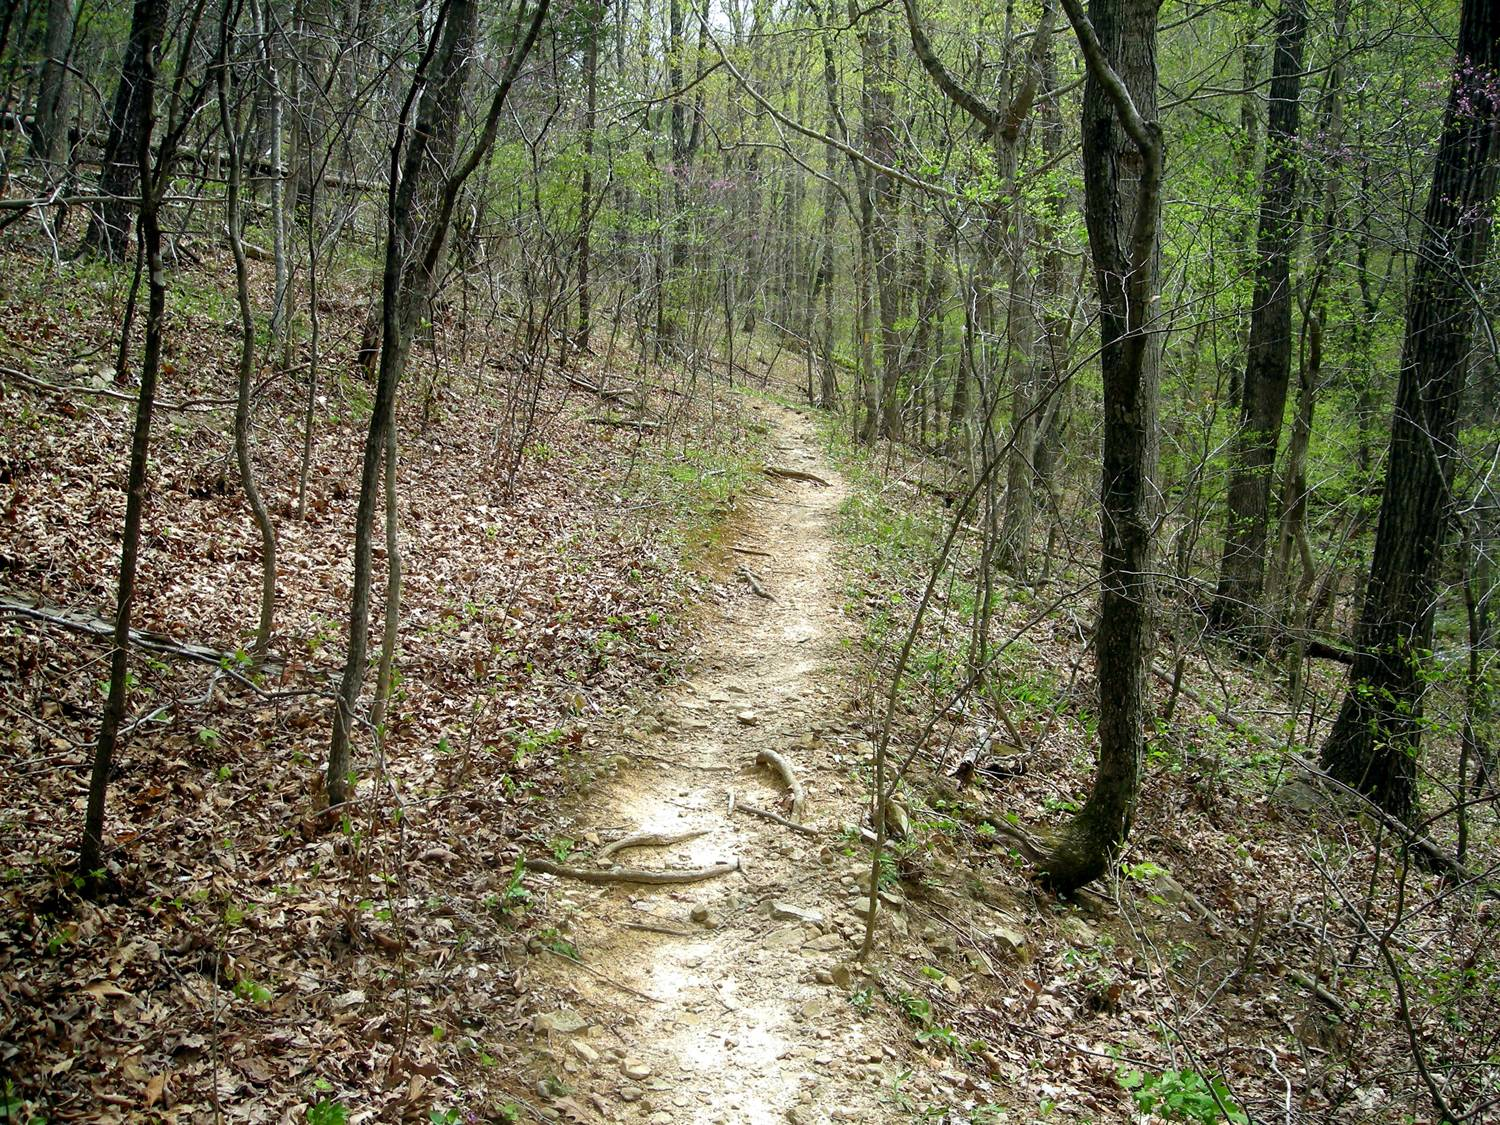 042412-lets-stay-together-staycation-scenic-trail.jpg